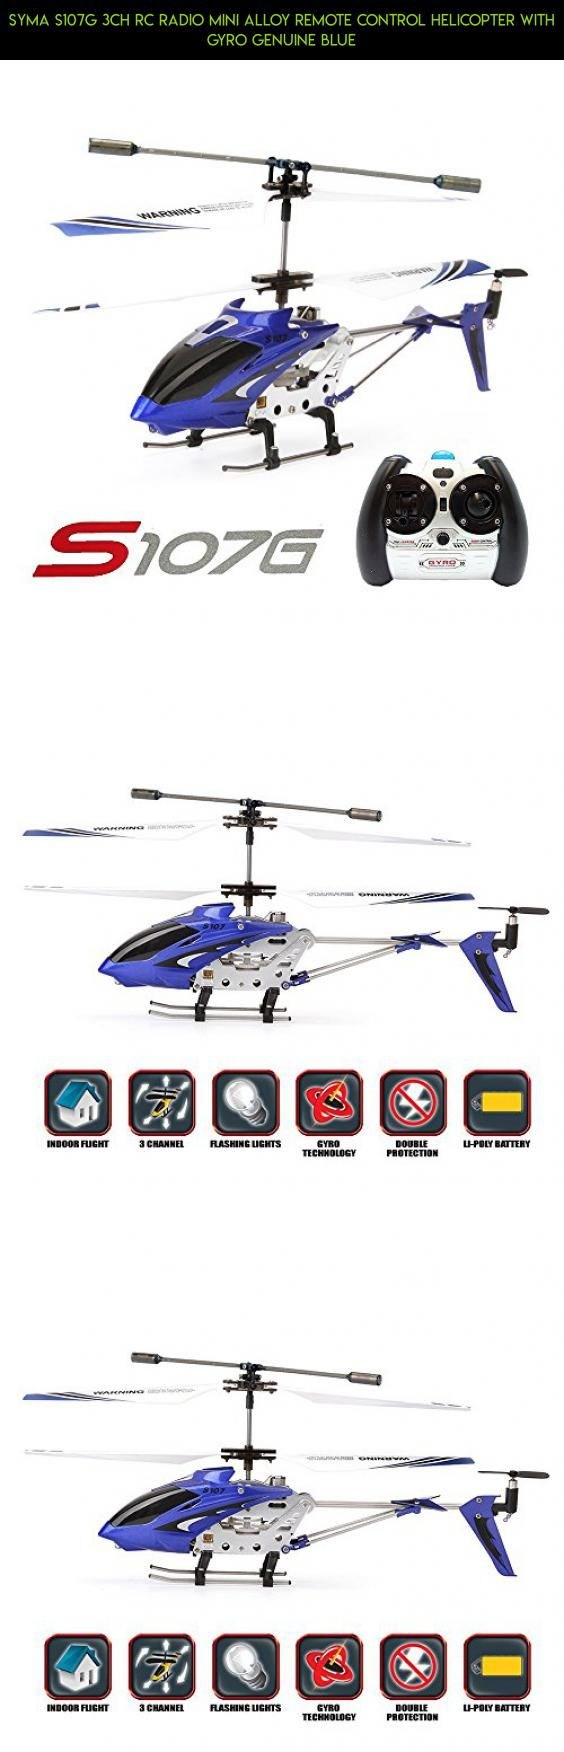 Syma S107G 3CH RC Radio Mini Alloy Remote Control Helicopter with Gyro Genuine Blue #gps #drone #parts #racing #kit #tech #fpv #syma #plans #gadgets #shopping #technology #drone #products #camera